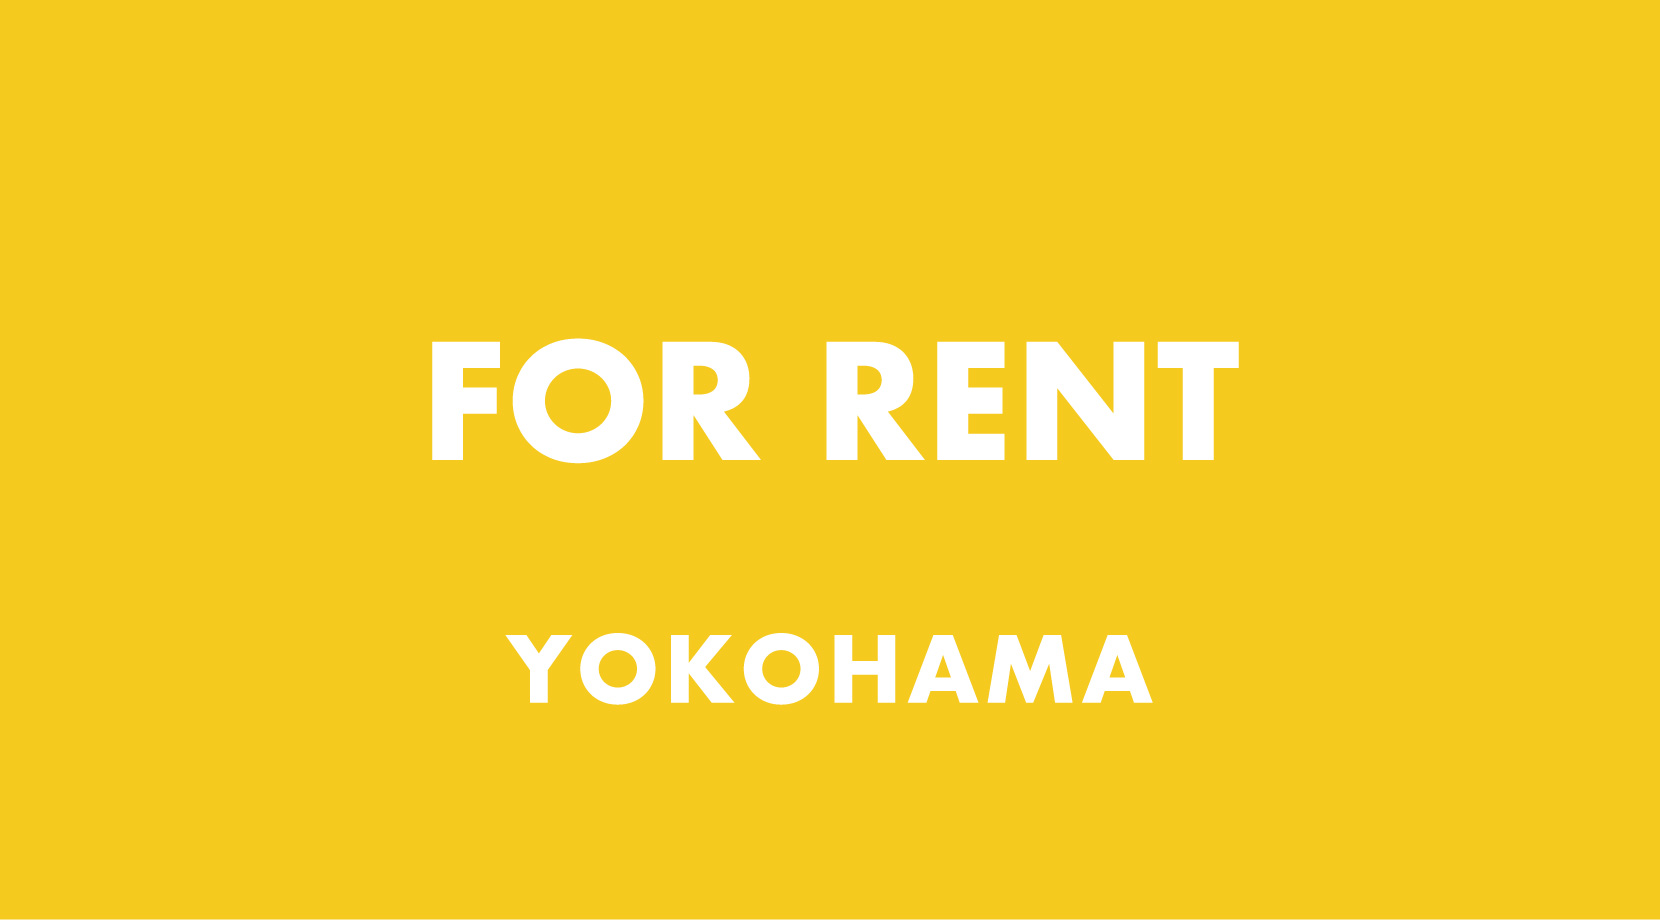 200304-rs_Web_header-forrent-yokohama